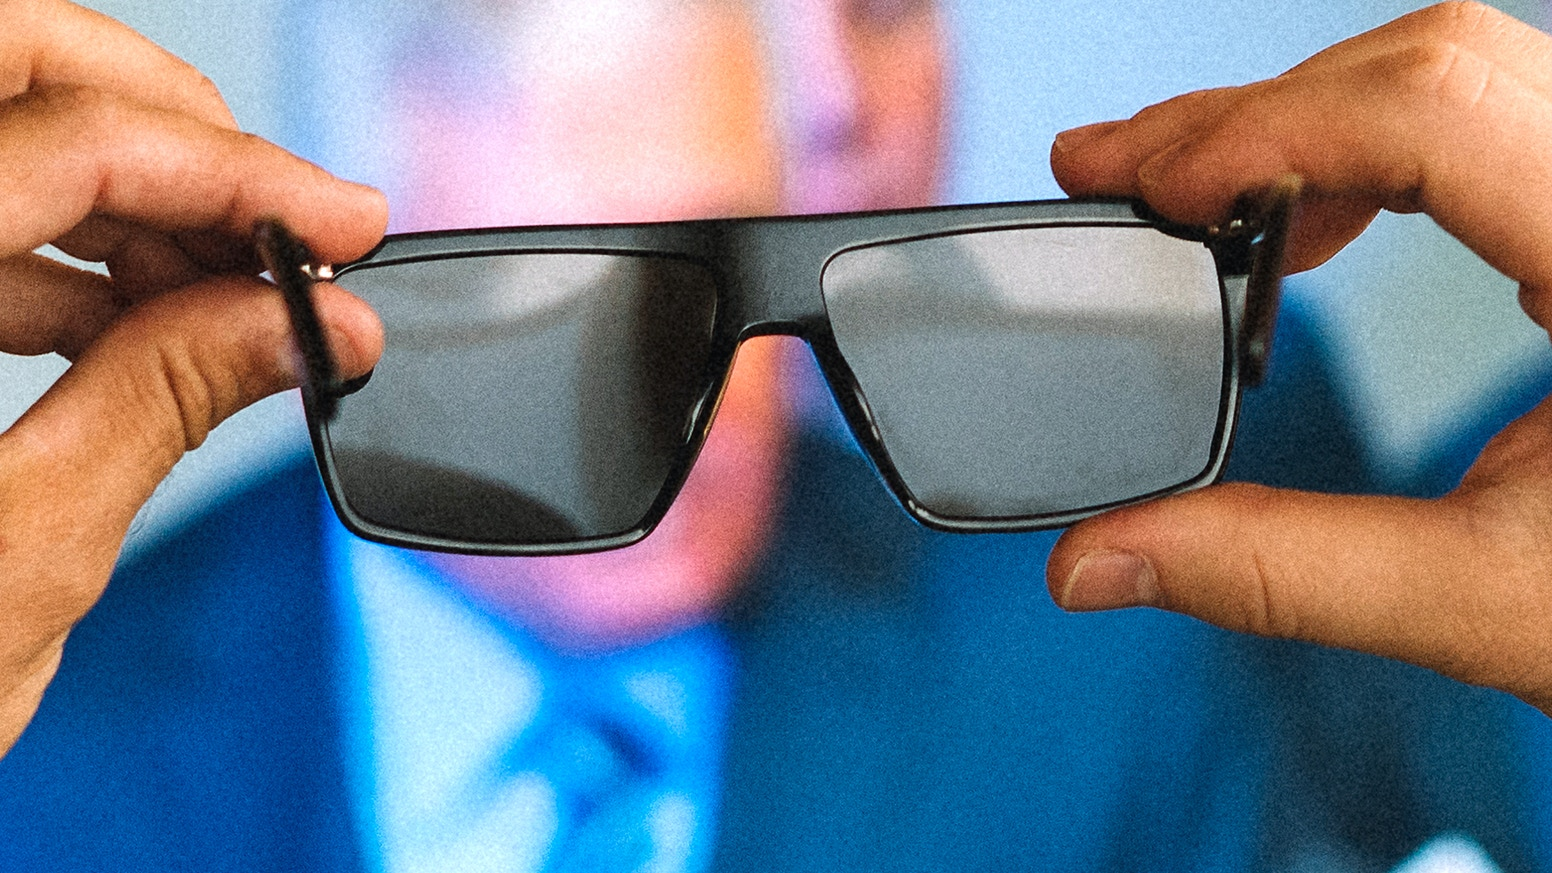 Glasses that allow you to live IRL (In Real Life) and see everything except screens